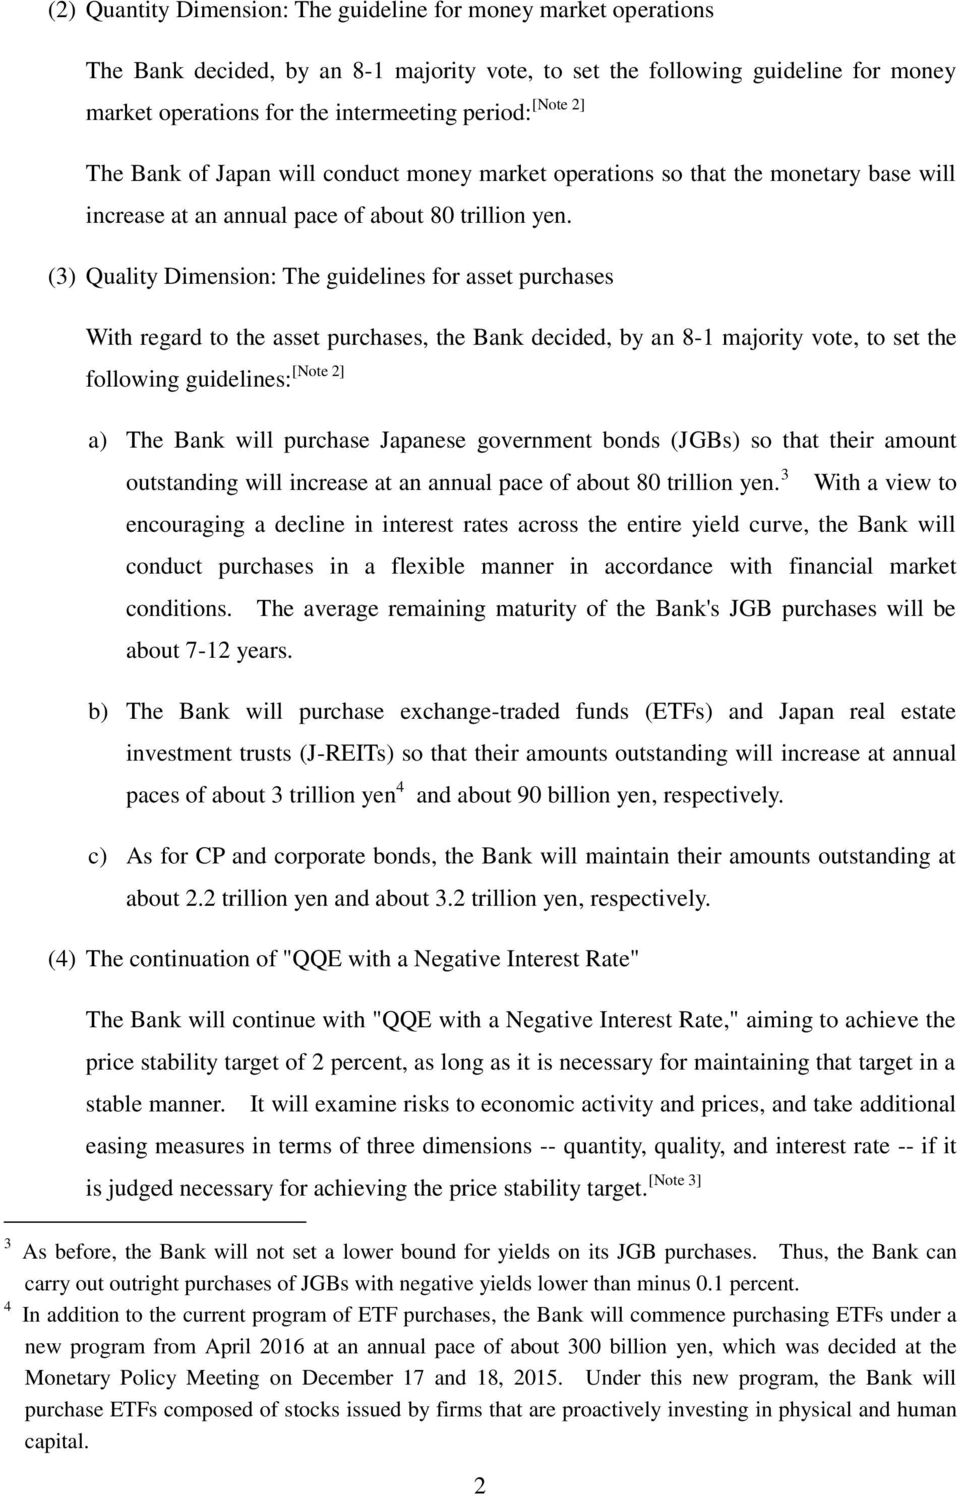 (3) Quality Dimension: The guidelines for asset purchases With regard to the asset purchases, the Bank decided, by an 8-1 majority vote, to set the [Note 2] following guidelines: a) The Bank will